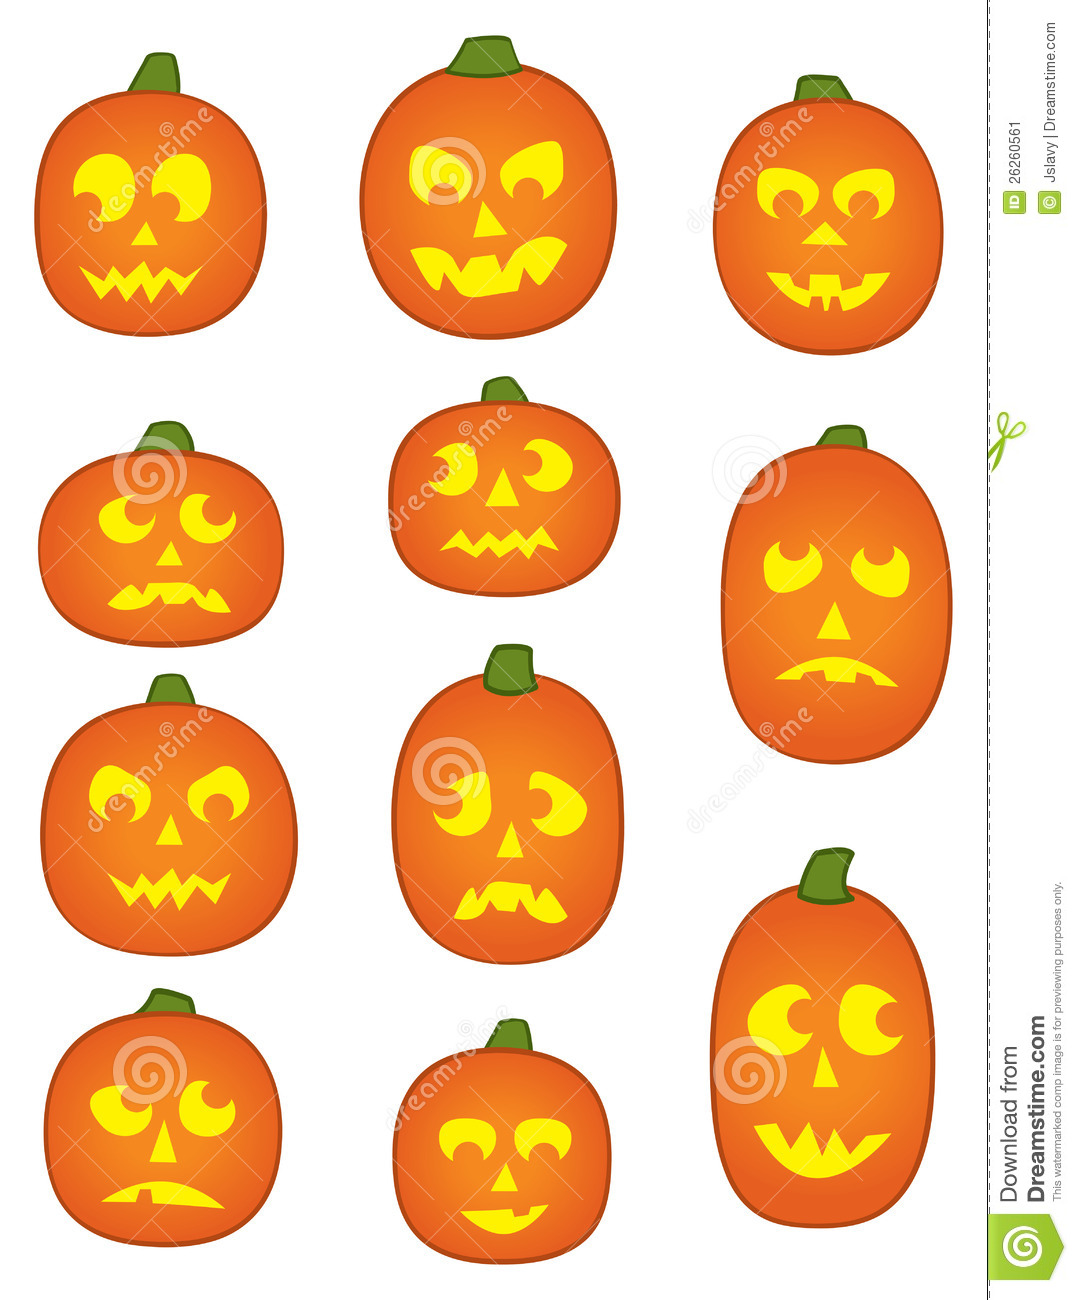 eleven pumpkin faces stock vector image of pumpkin scared 26260561. Black Bedroom Furniture Sets. Home Design Ideas